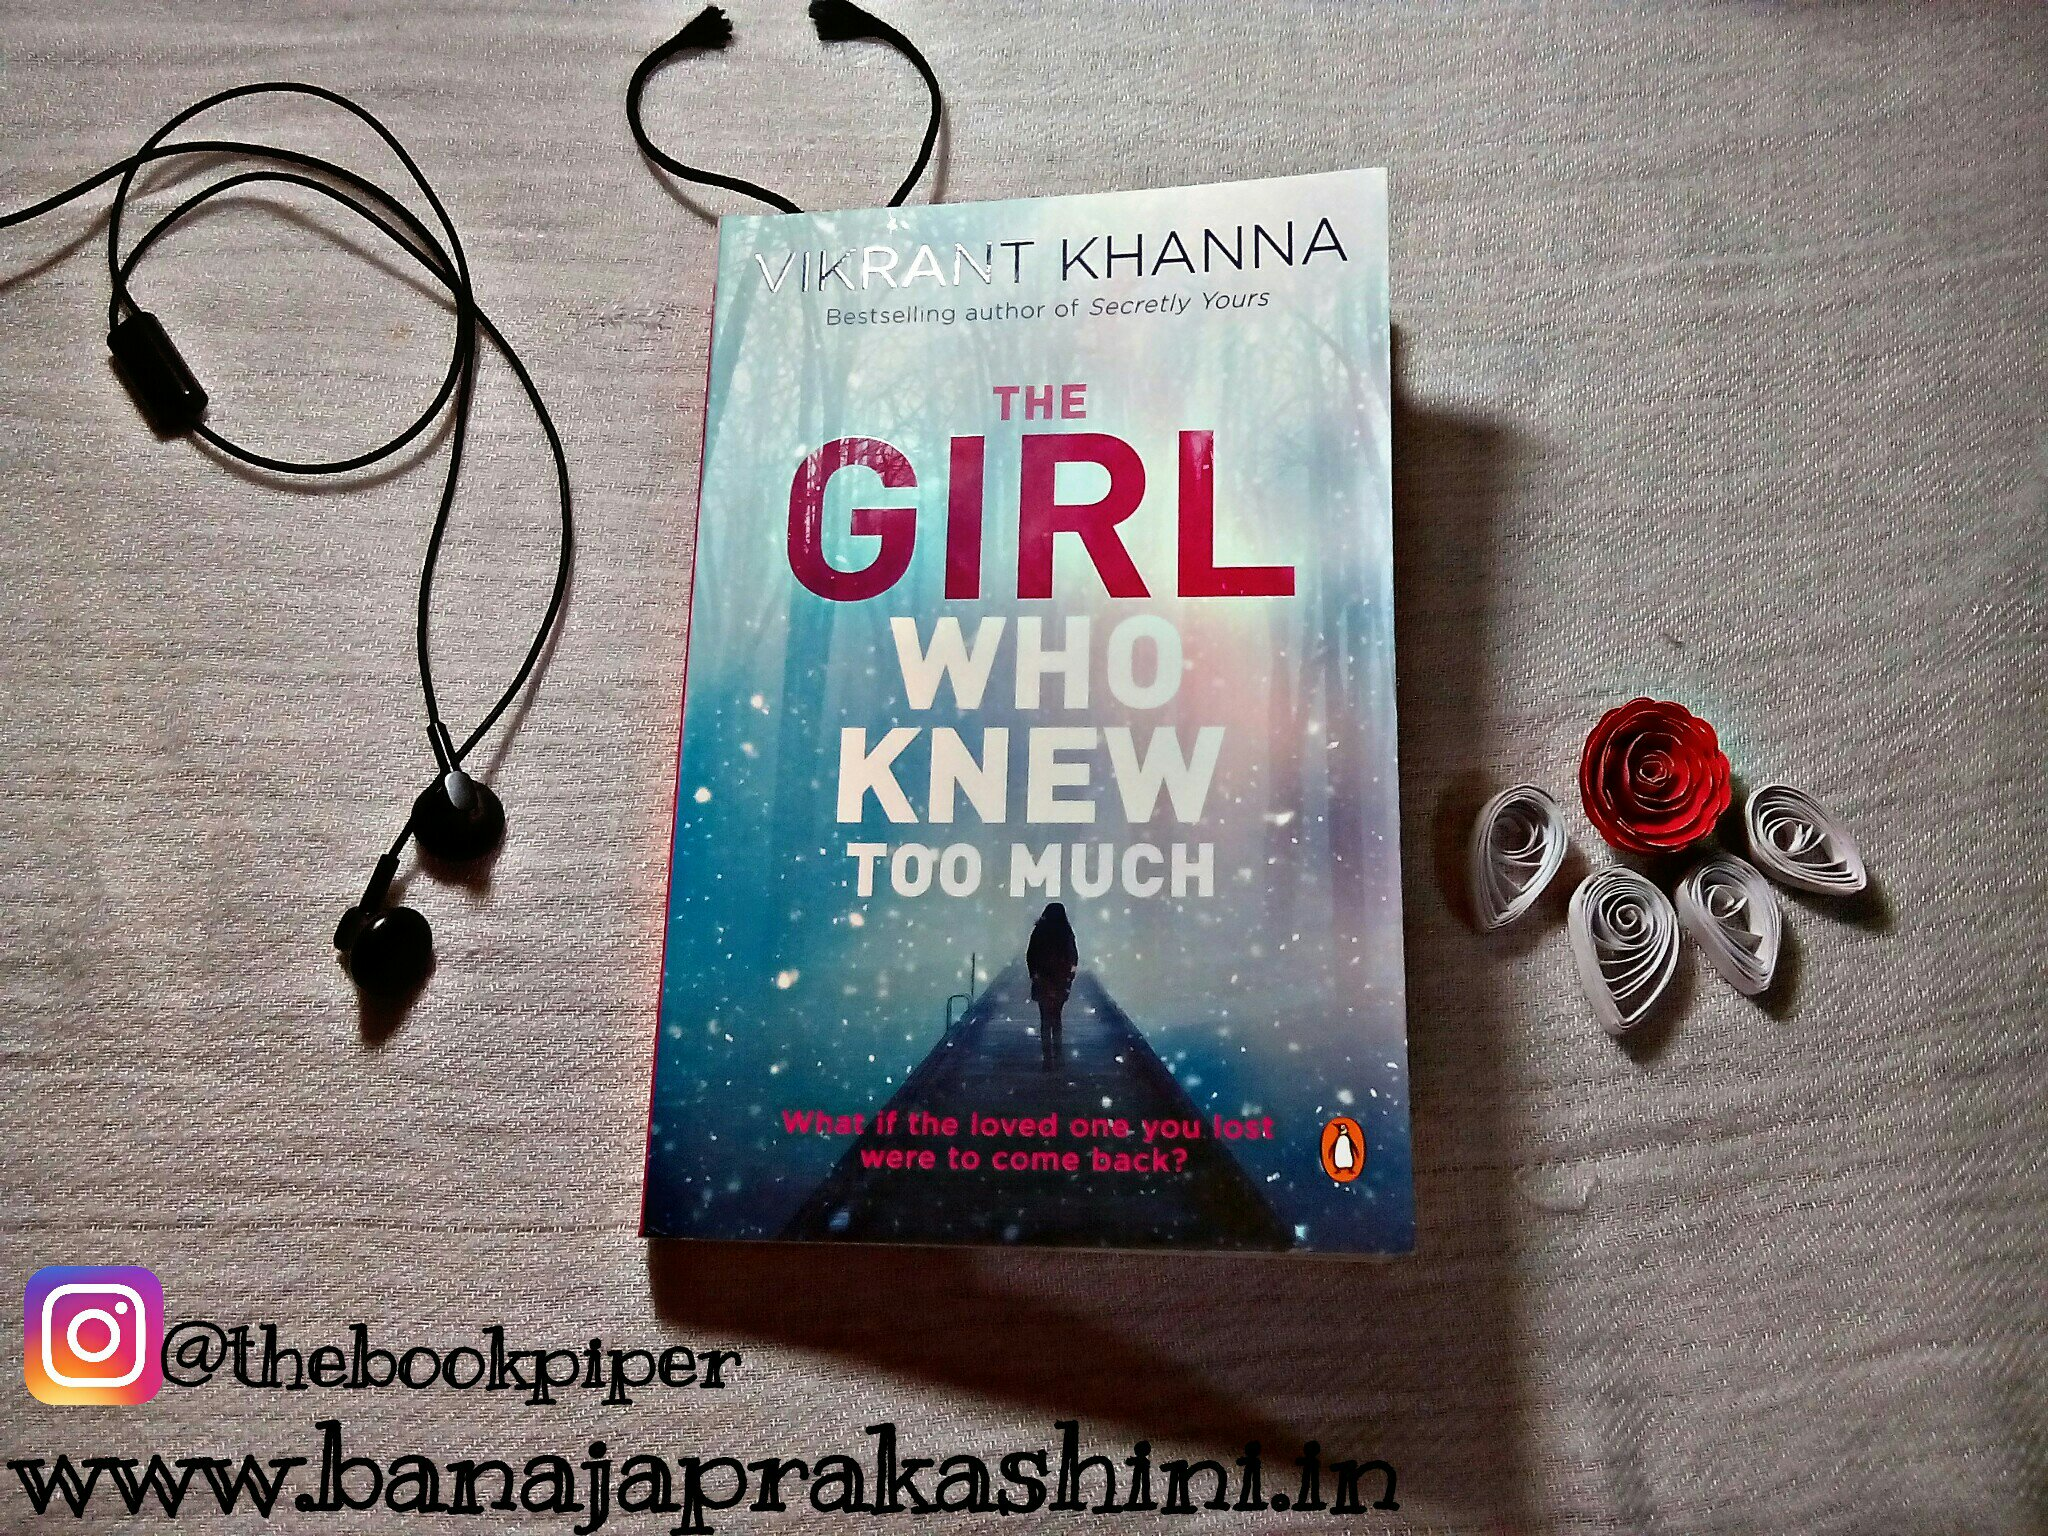 Review Pen: The Girl Who Knew Too Much by Vikrant Khanna